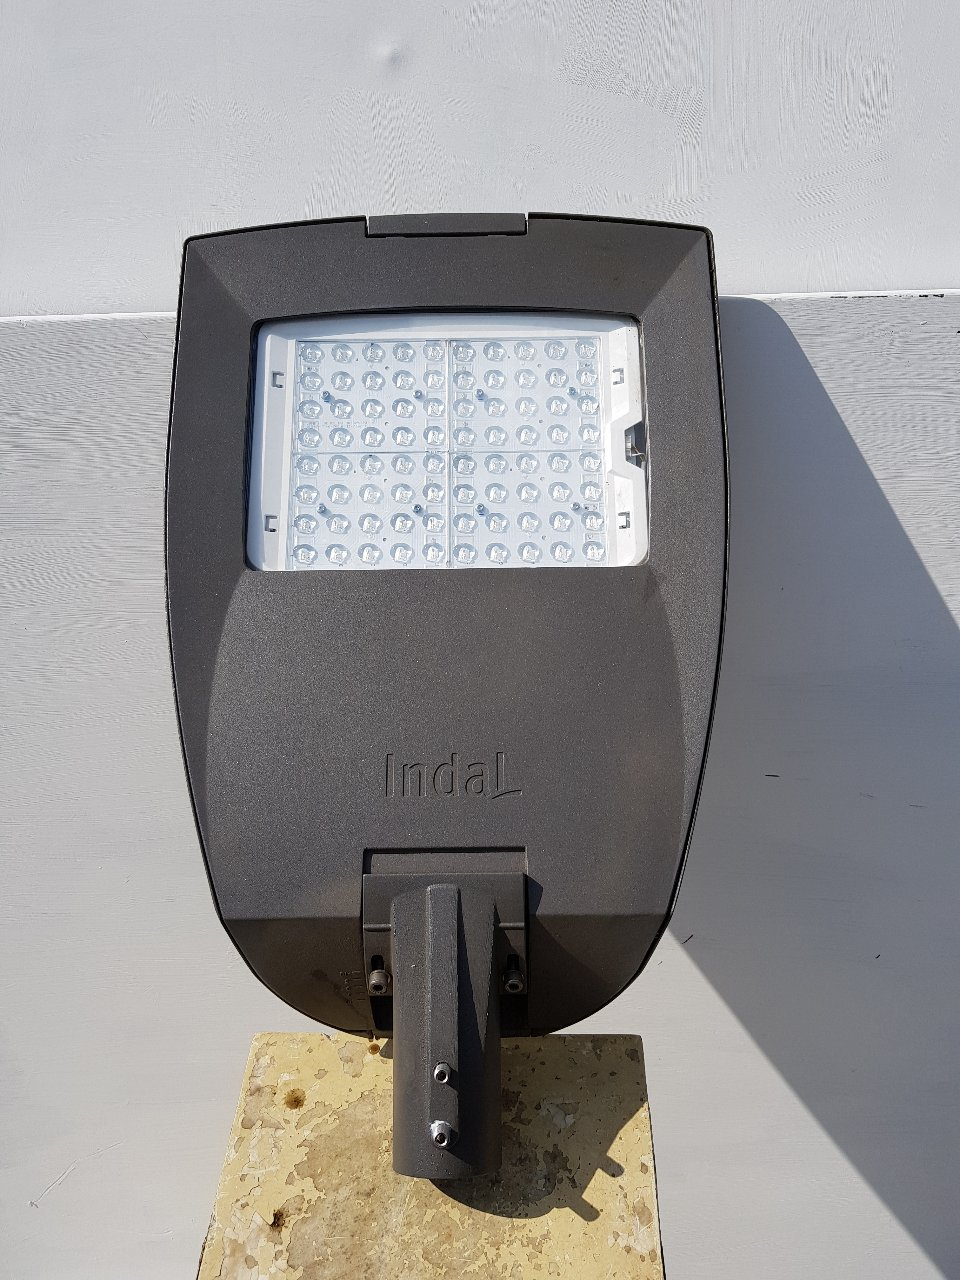 Philips Indal Street Lights 80 LED